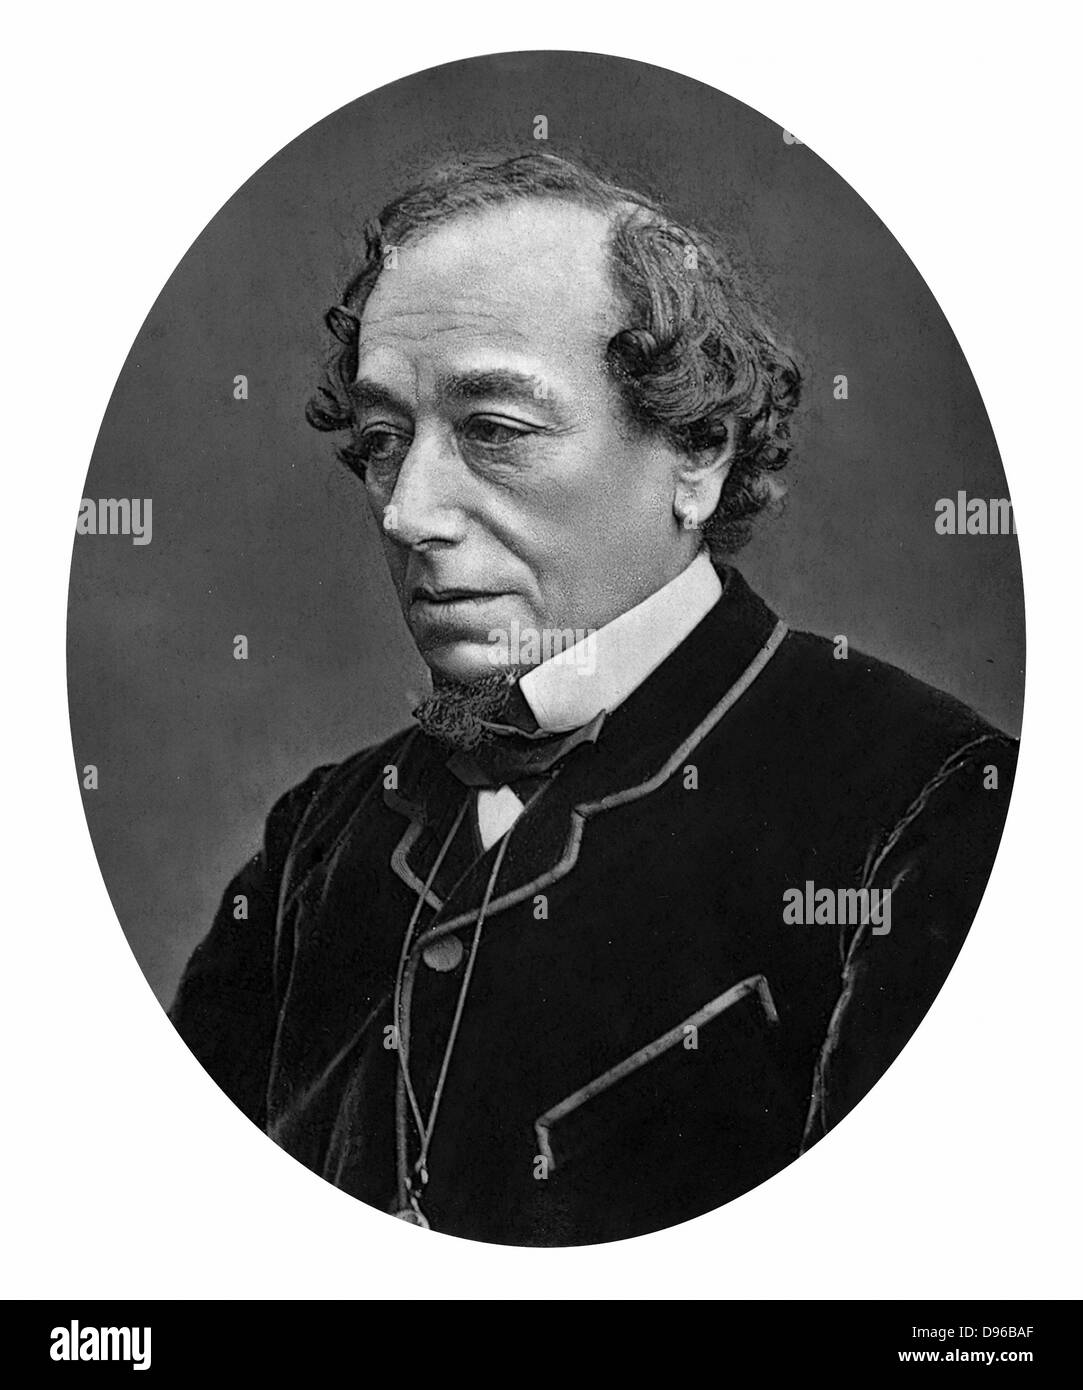 Benjamin Disraeli, 1st Earl of Beaconsfield (1804-1881) British Conservative statesman. Photograph published London - Stock Image